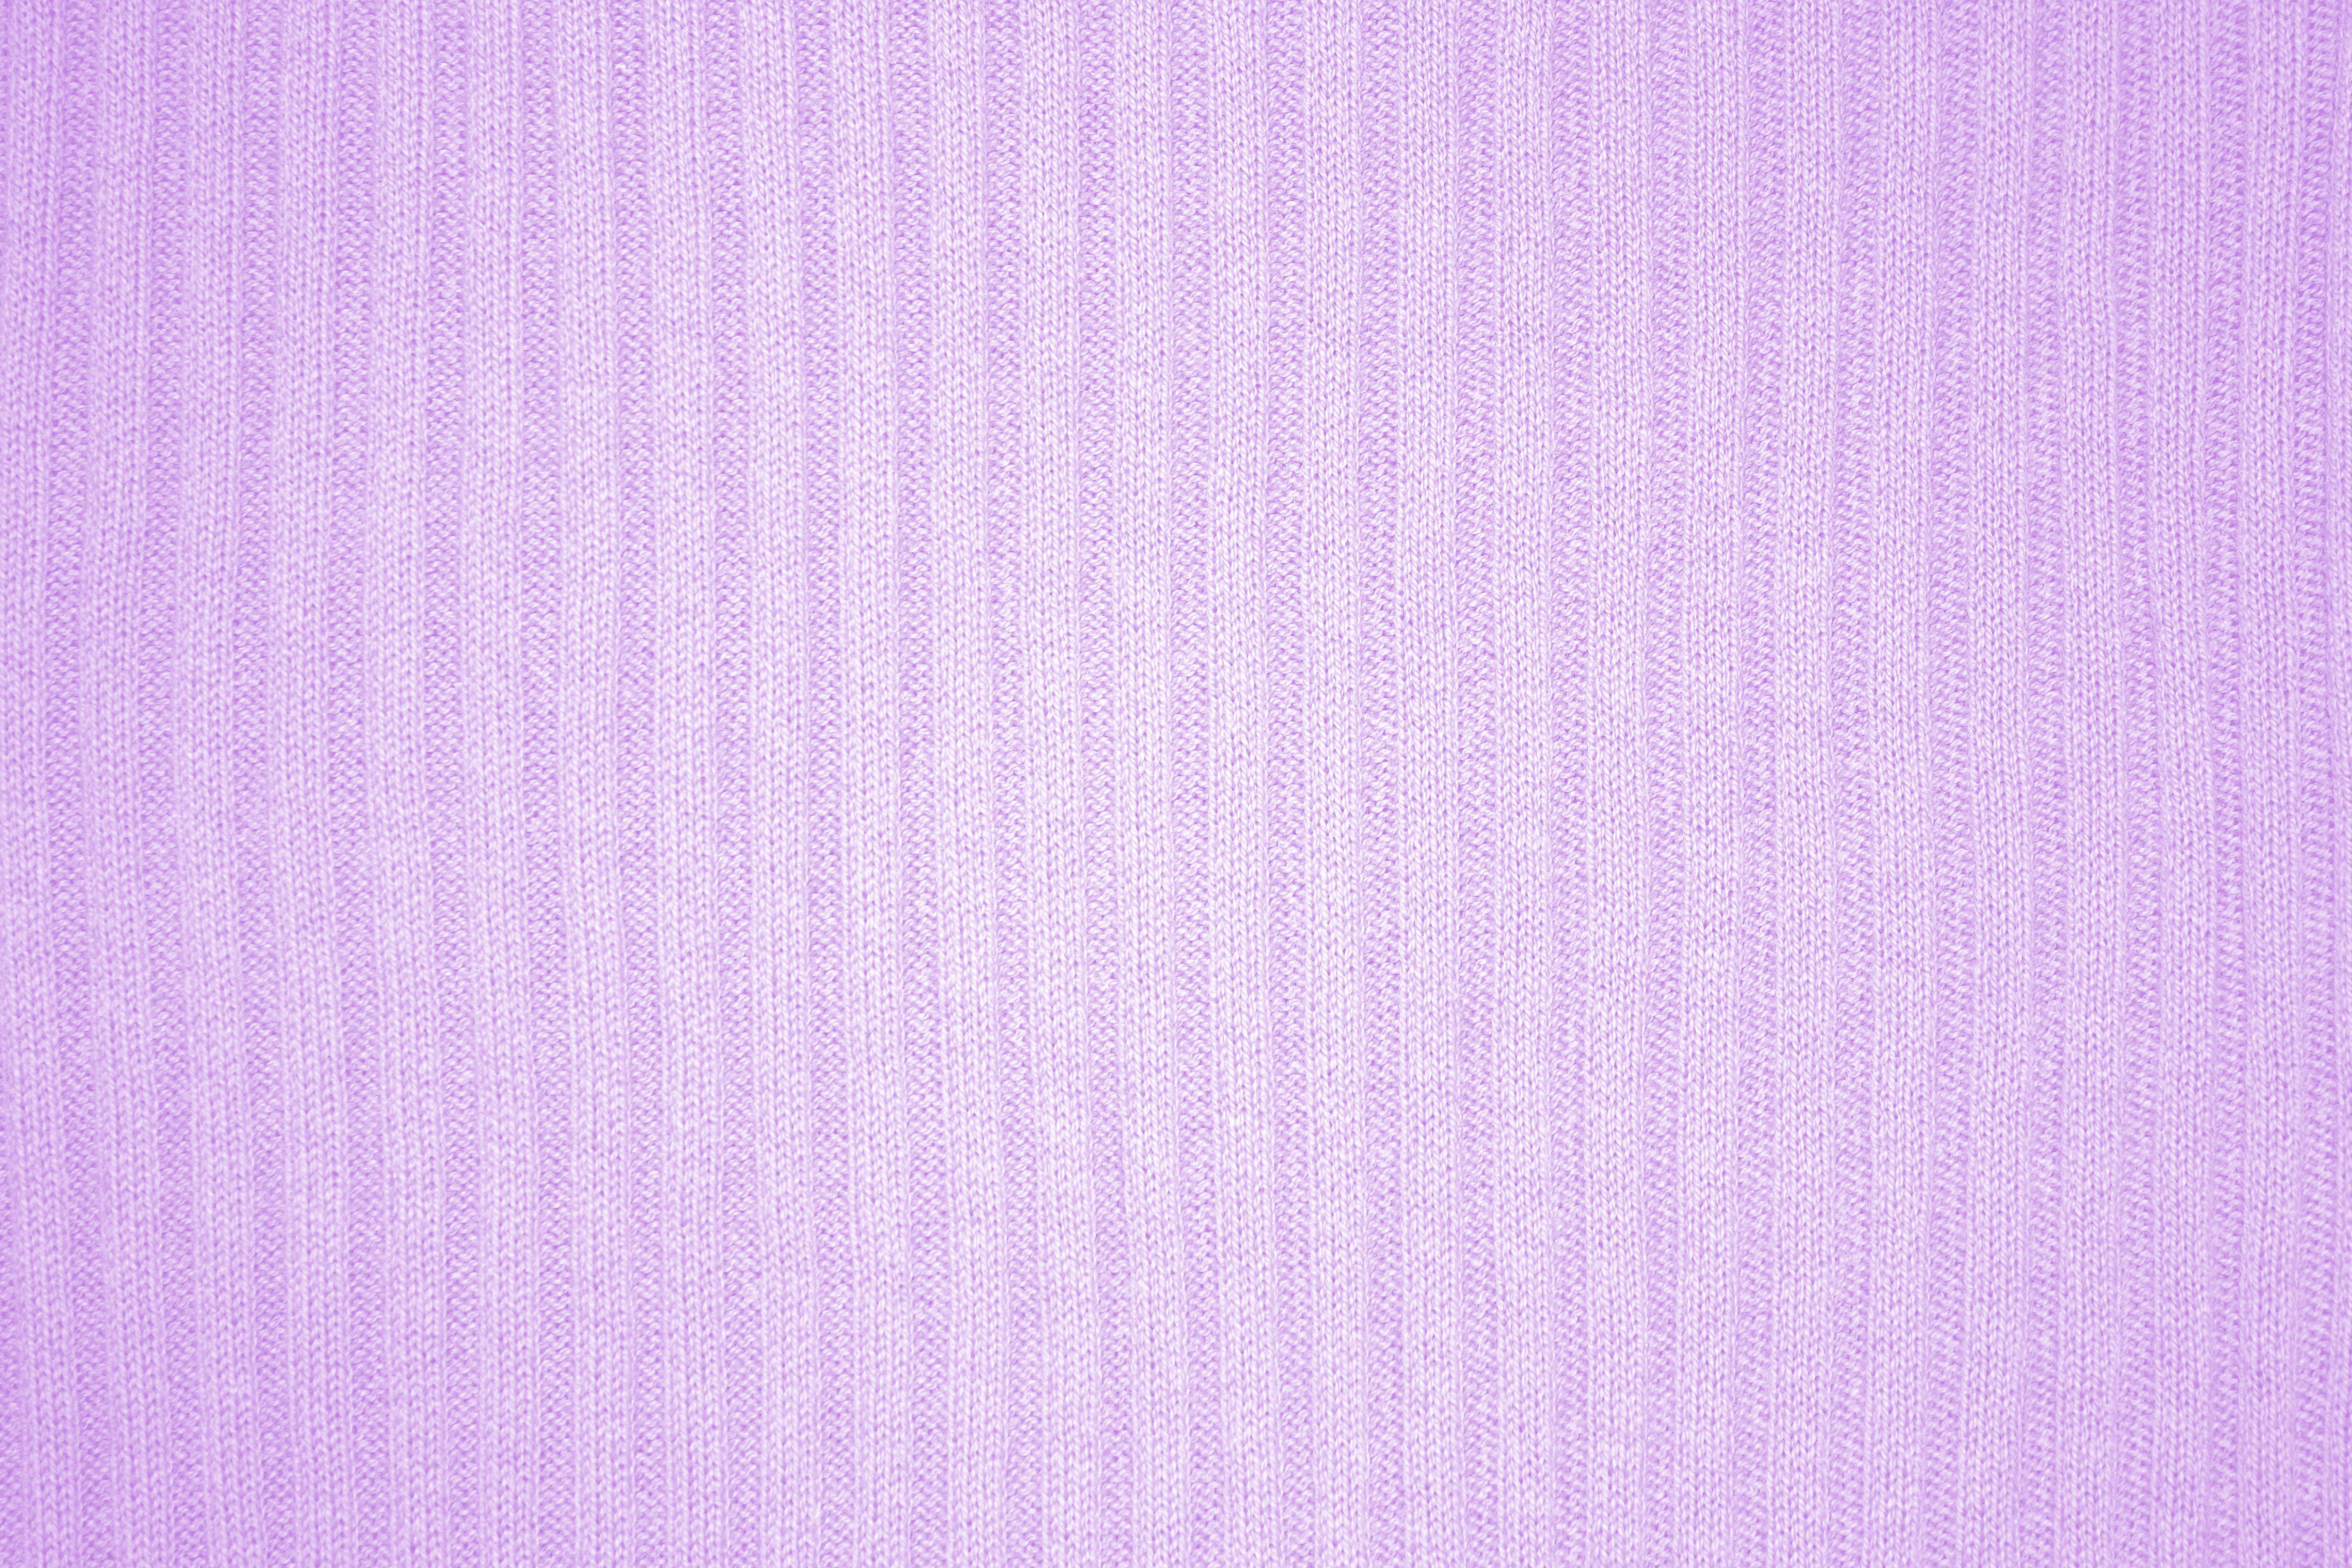 Light Purple Backgrounds Lavender Colored Ribbed Knit